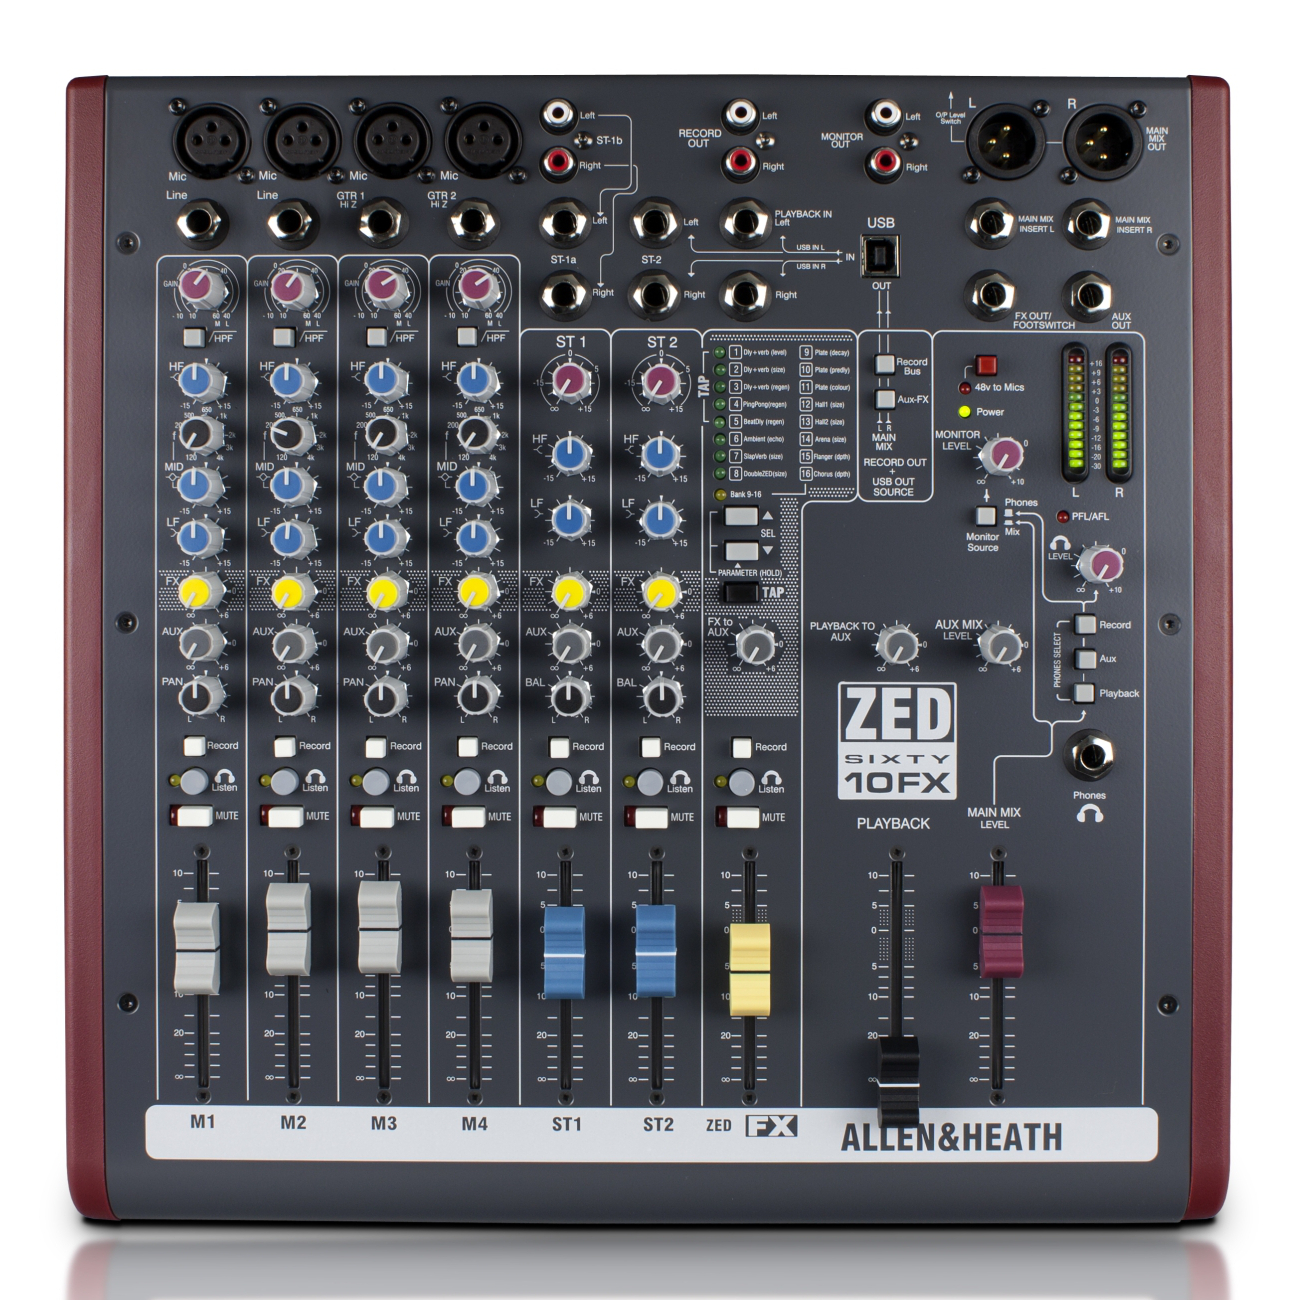 Allen & Heath ZED60-10FX Mixer.